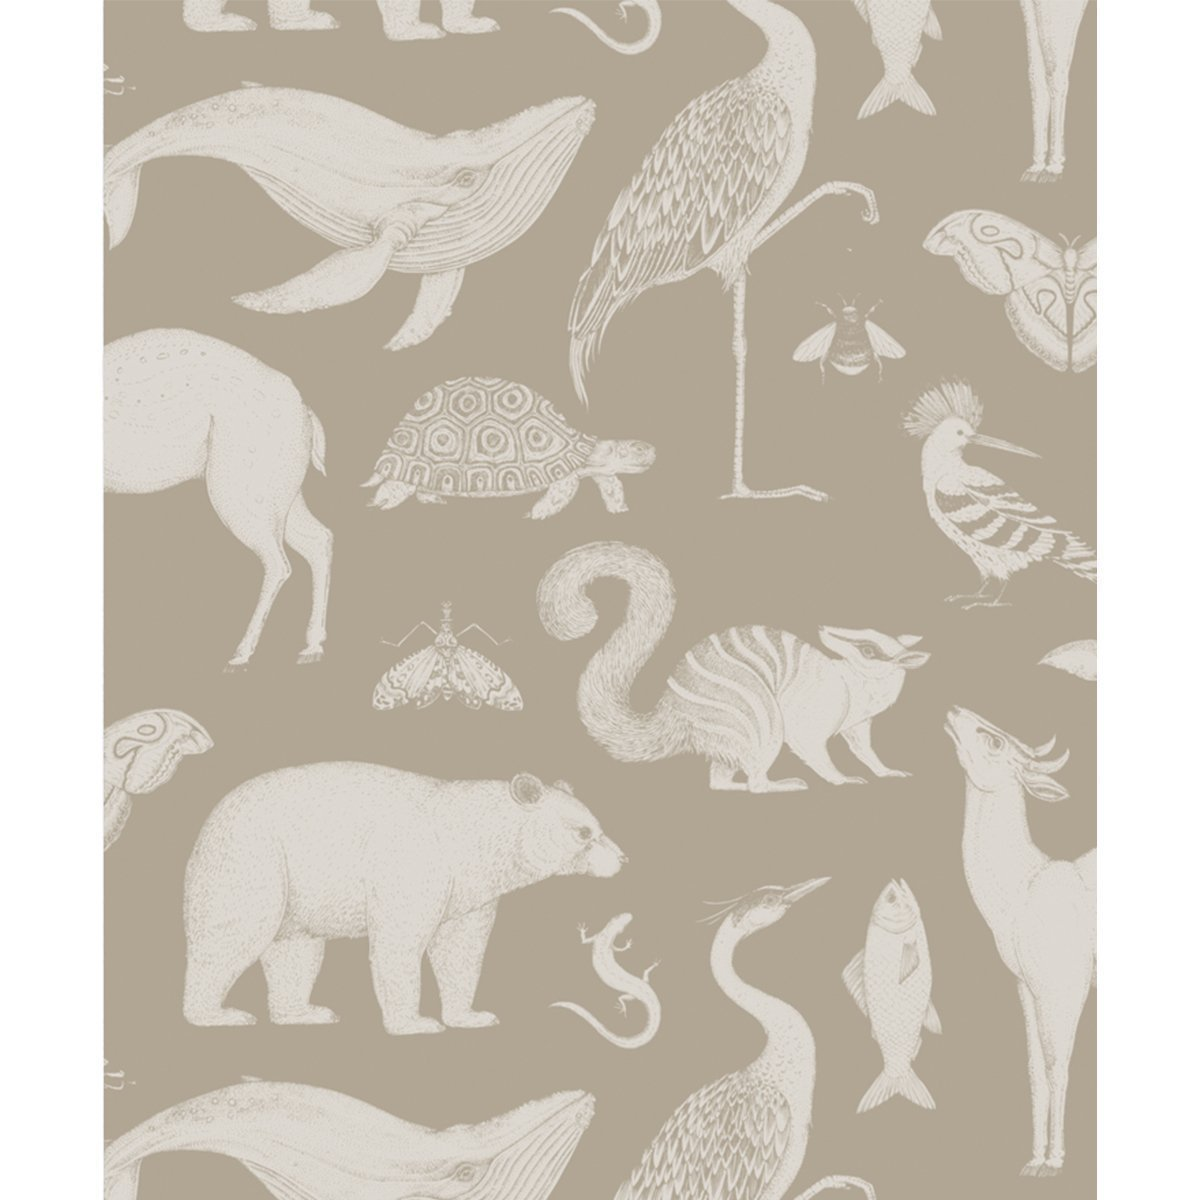 Ferm Living Katie Scott Animals Behang - Sand